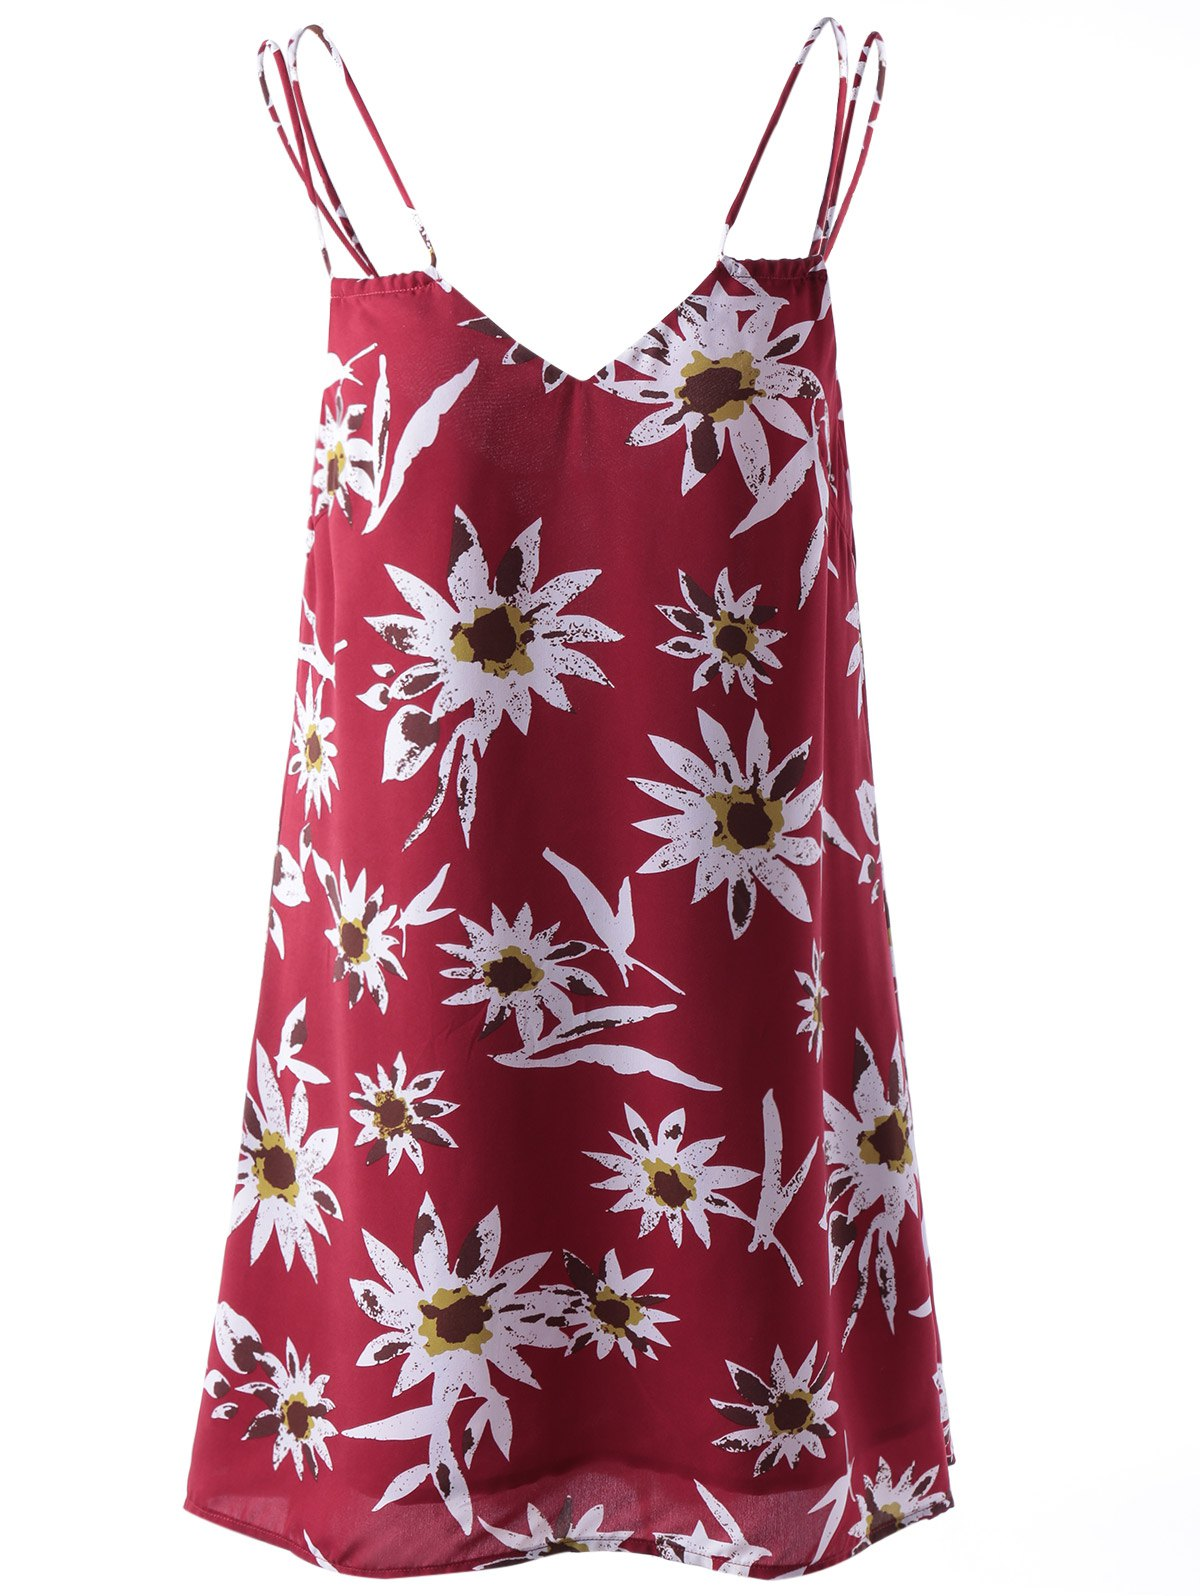 Stylish Printing Spaghetti Straps Dress For Women - COLORMIX S